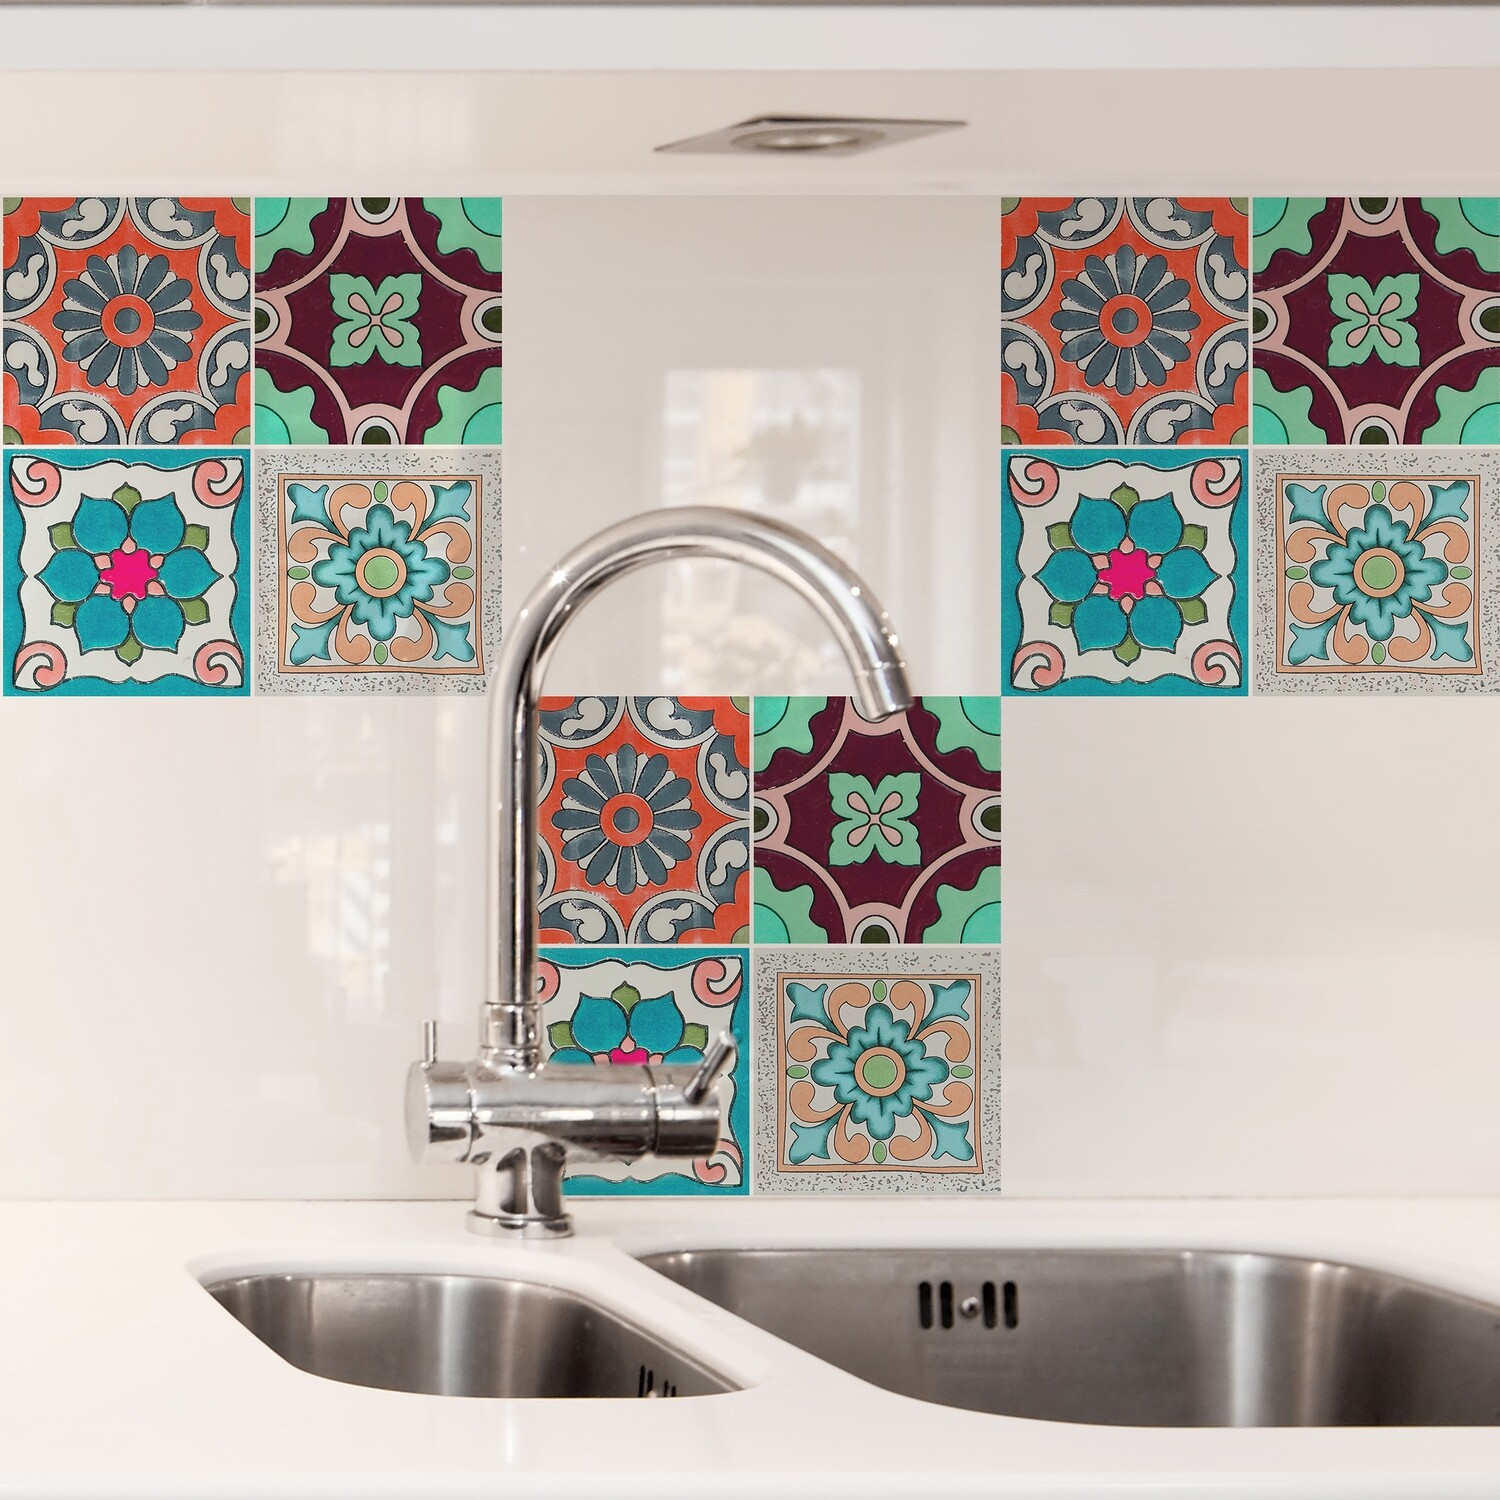 Sicily Self Adhesive Tile Cover